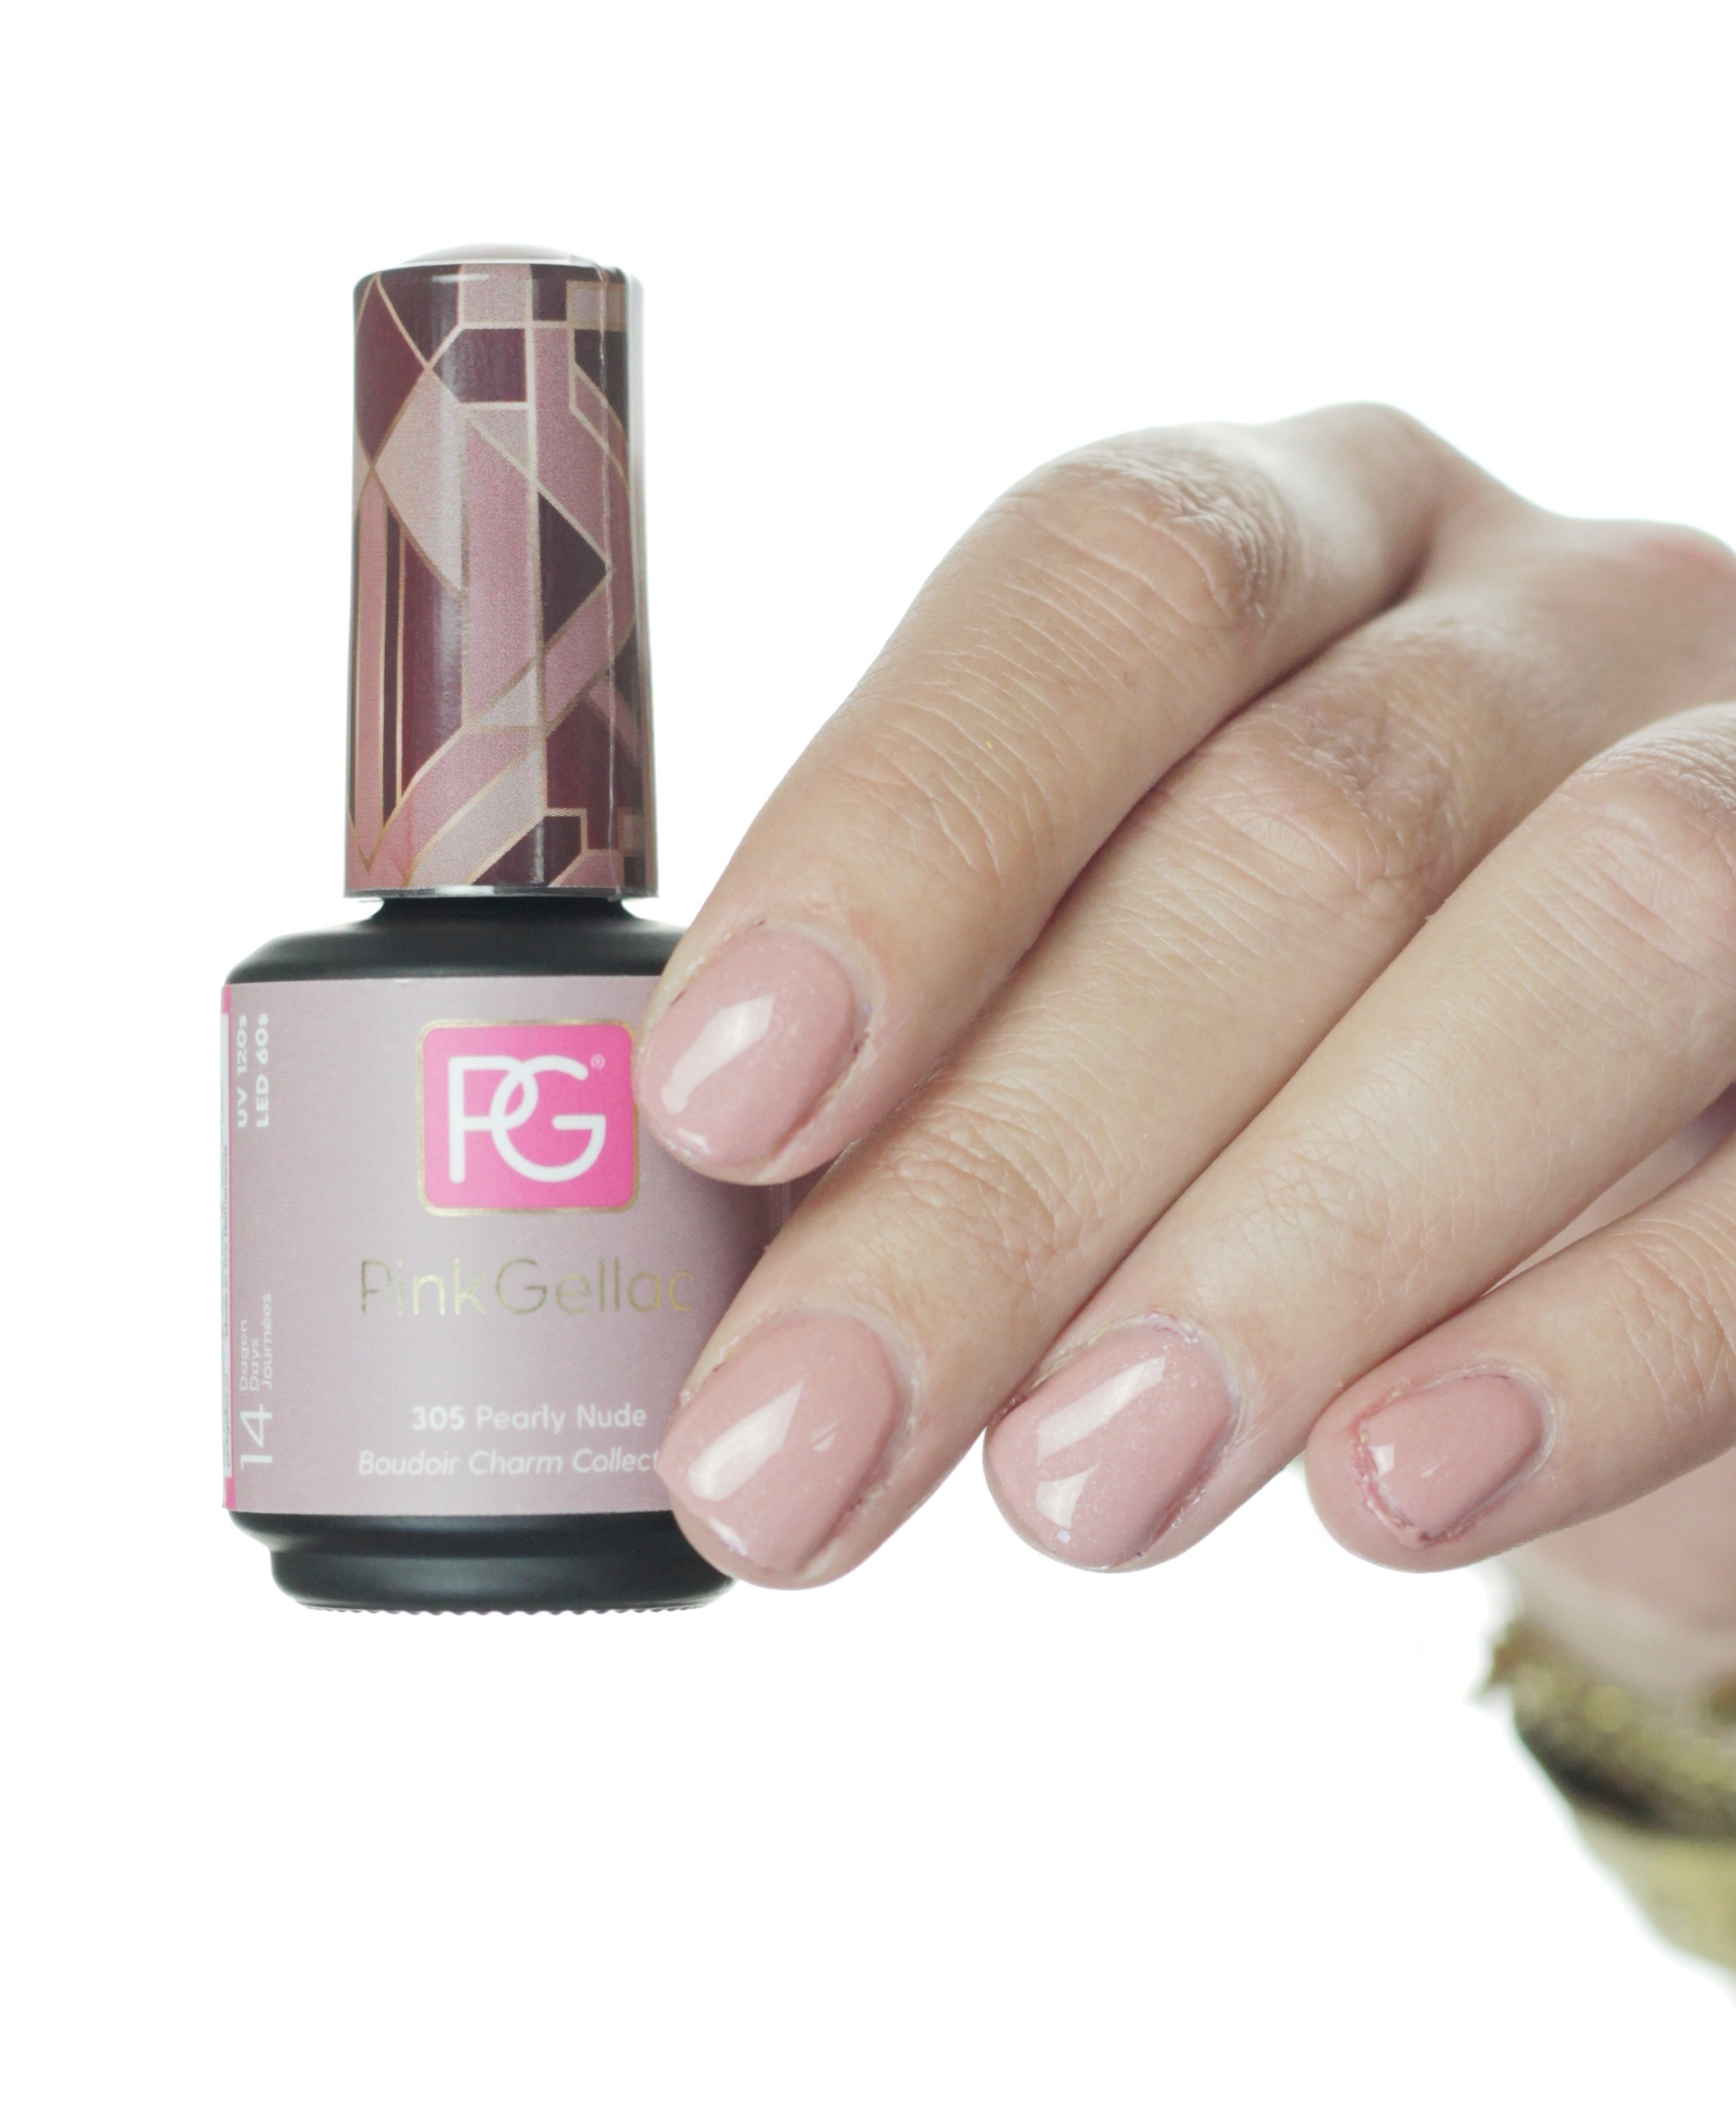 Boudoir Charm Collectie 305 Pearly Nude